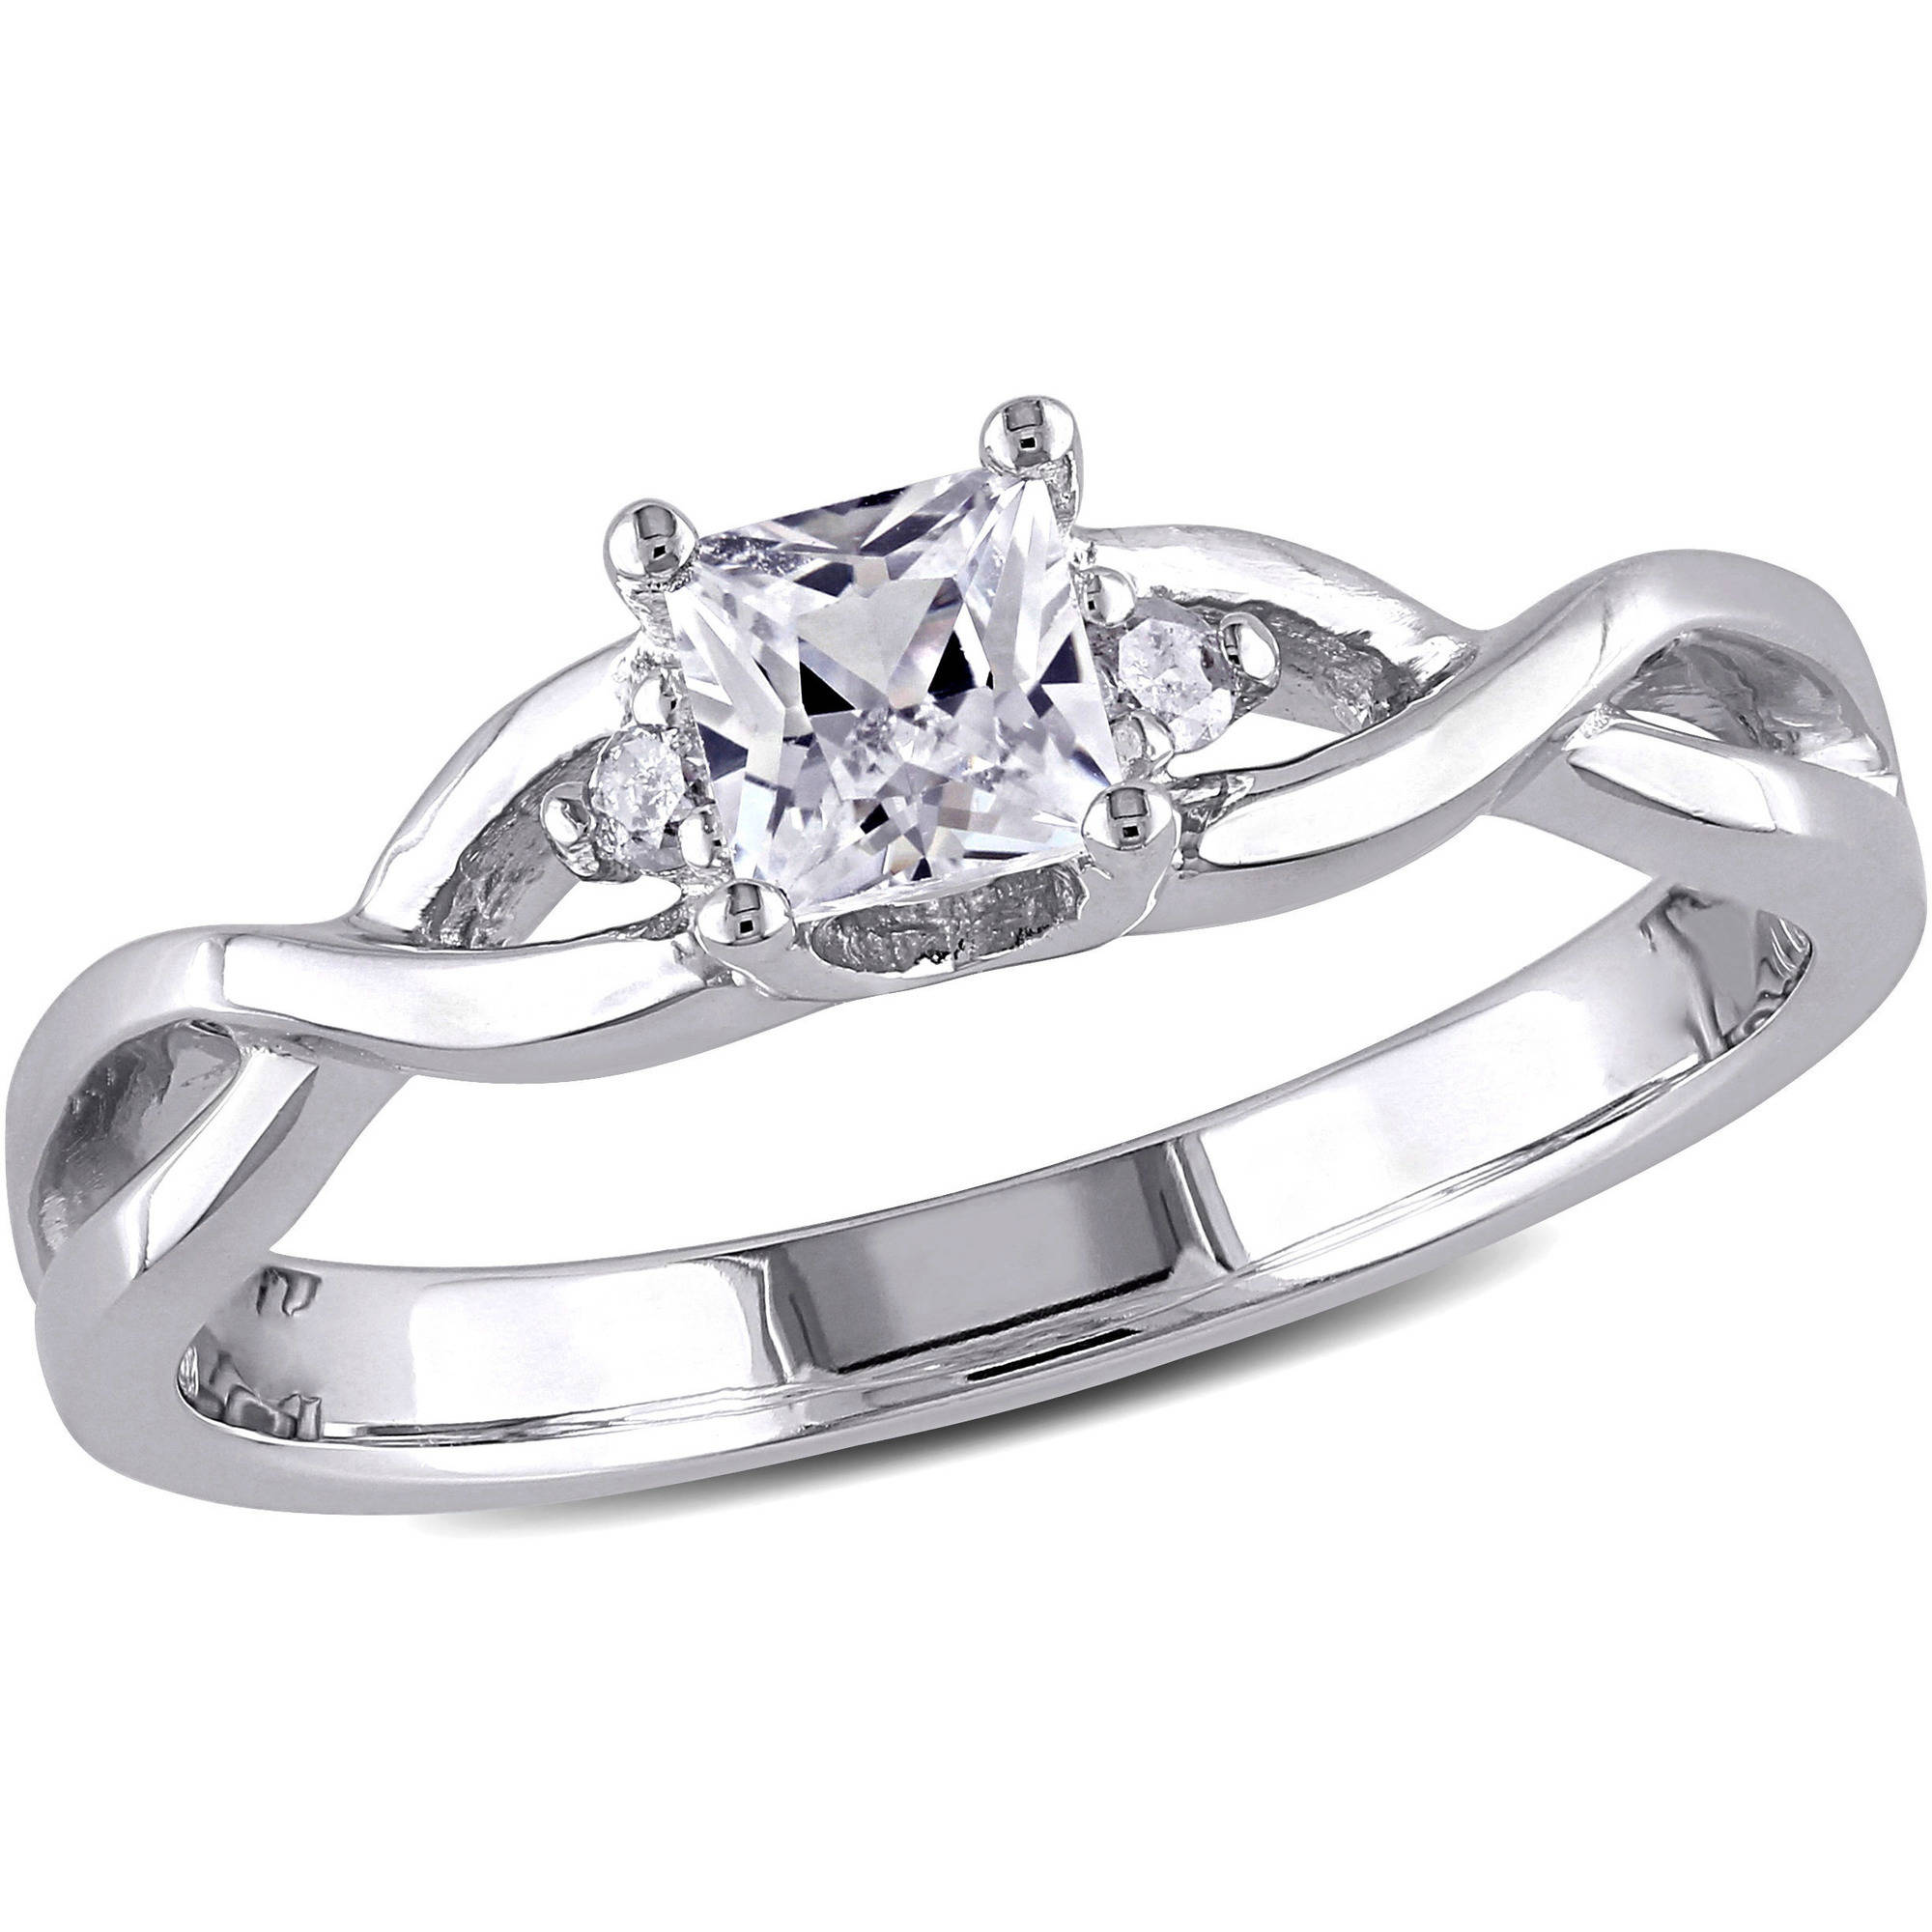 Miabella 3/8 Carat T.G.W. Princess-Cut Created White Sapphire and Diamond-Accent Sterling Silver Cross Over Engagement Ring